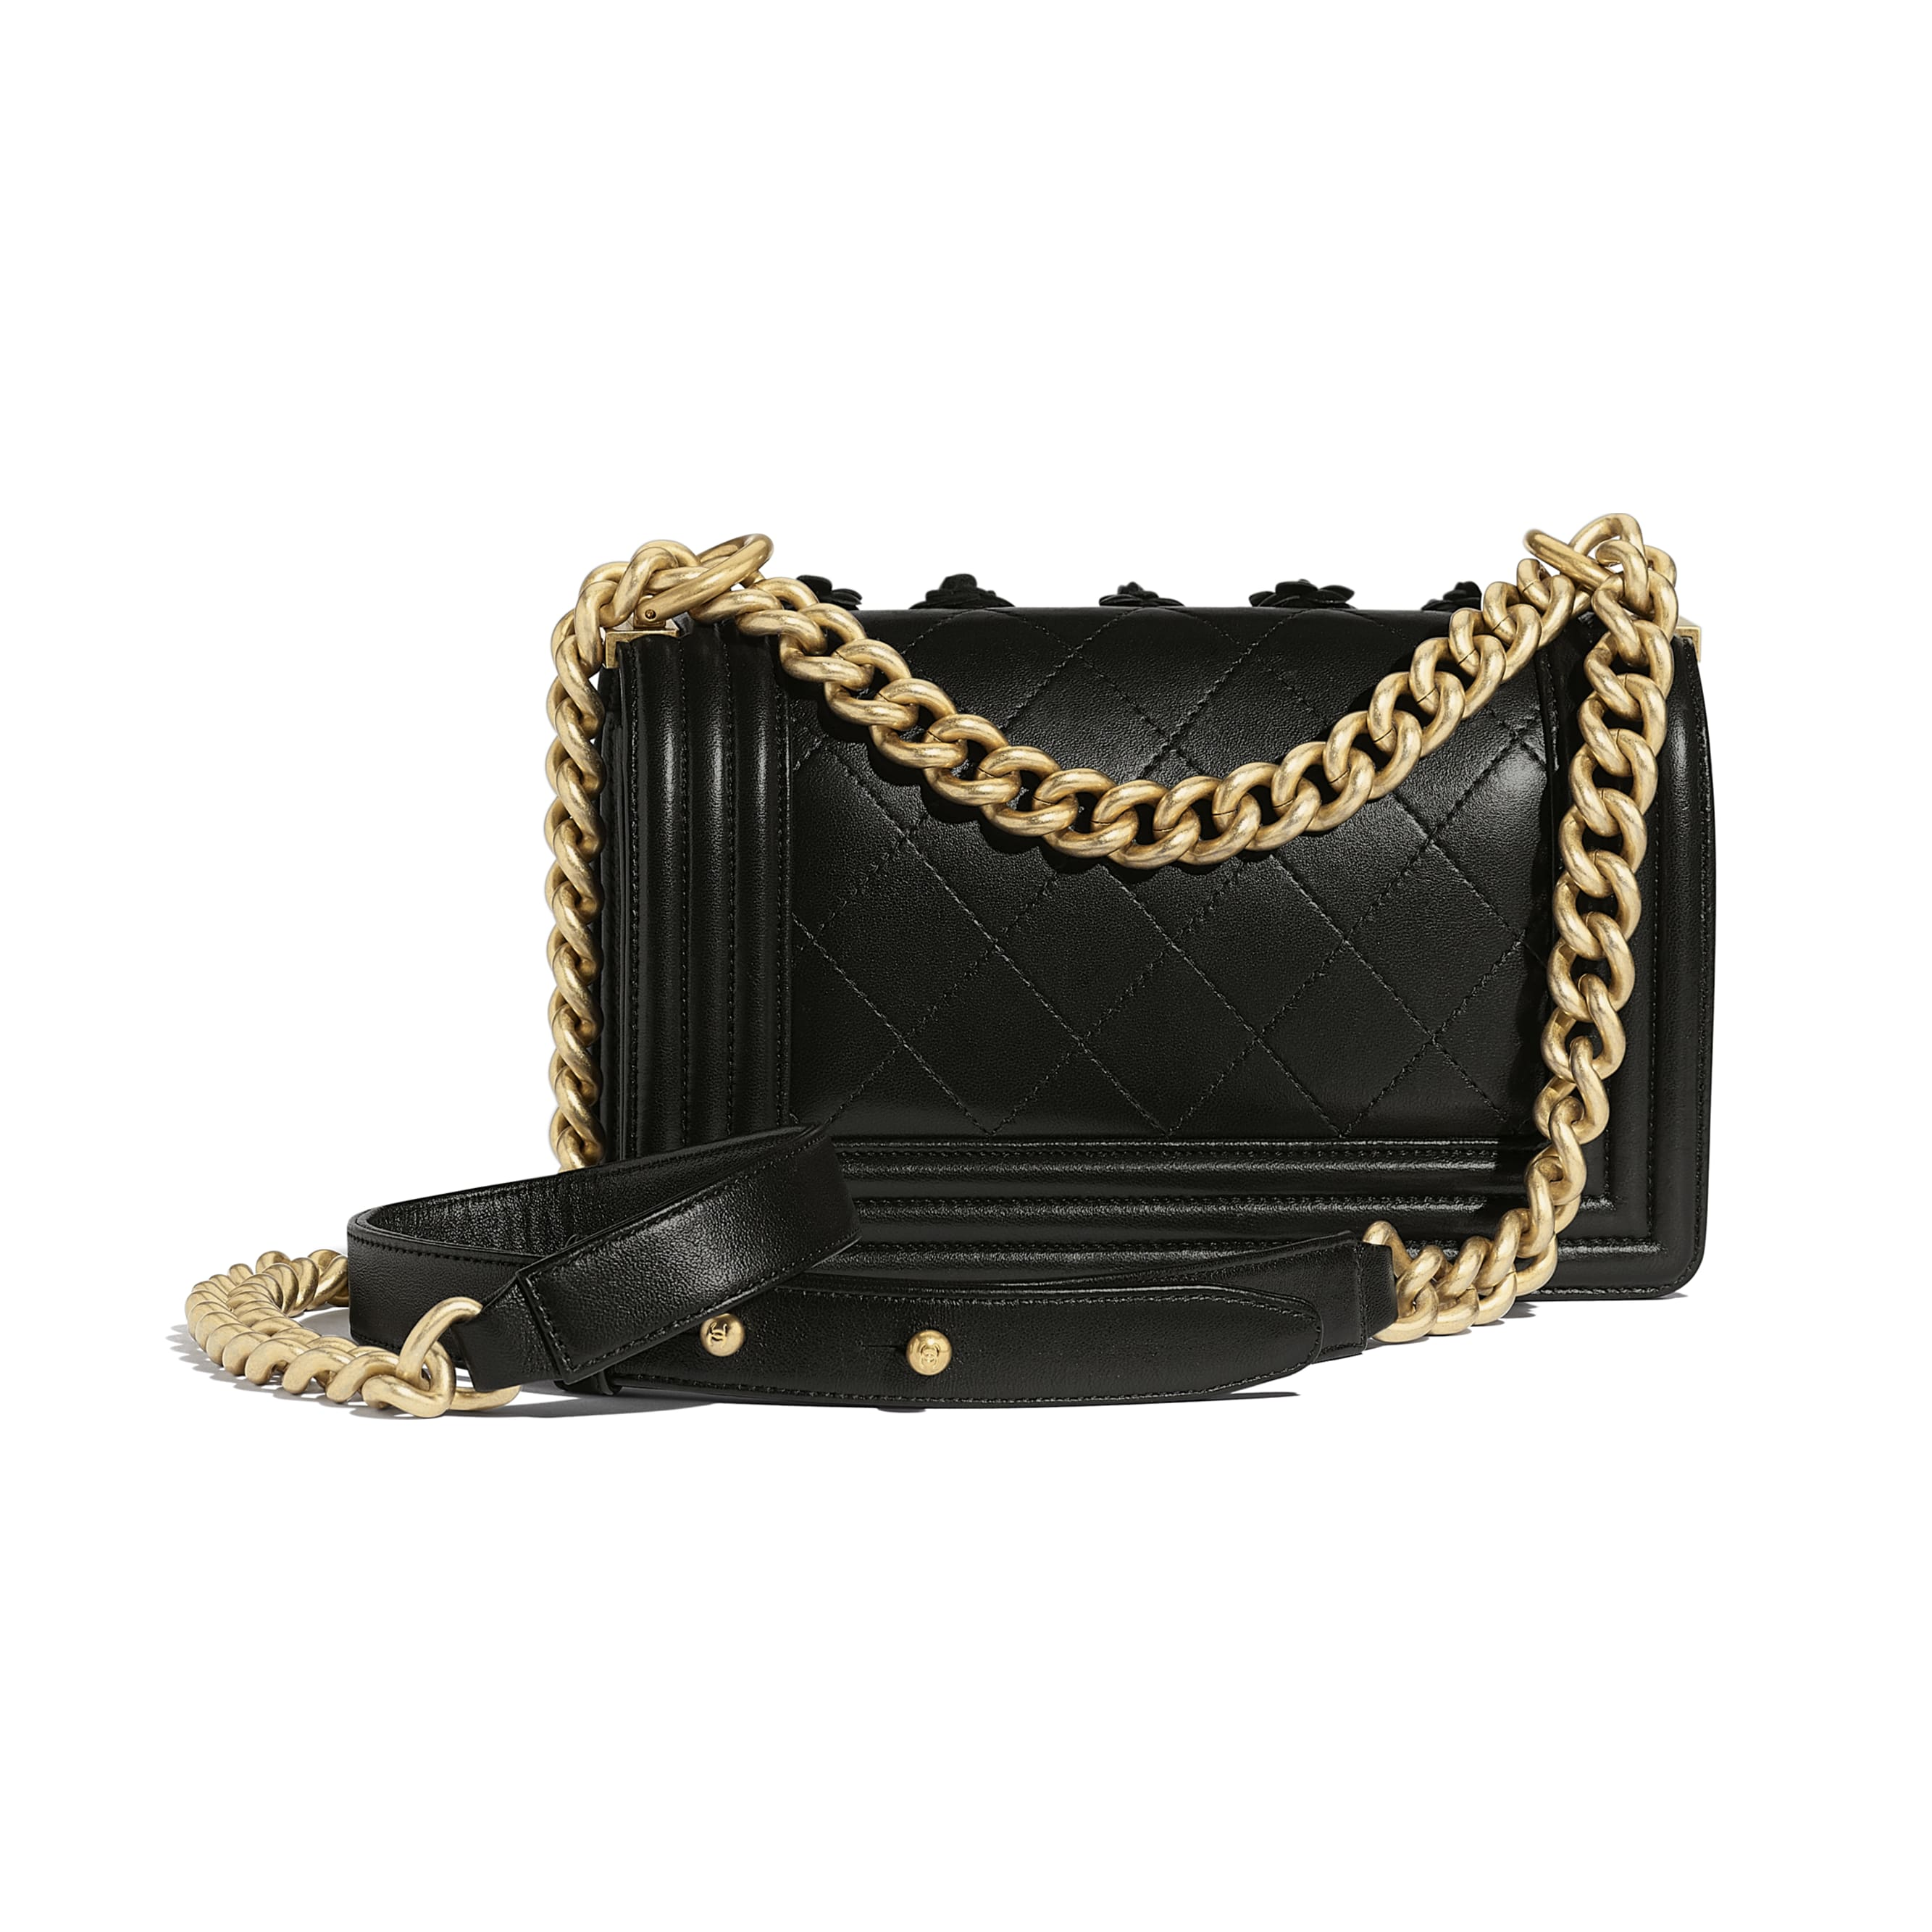 Small BOY CHANEL Handbag - Black - Embroidered Lambskin & Gold-Tone Metal - Alternative view - see standard sized version